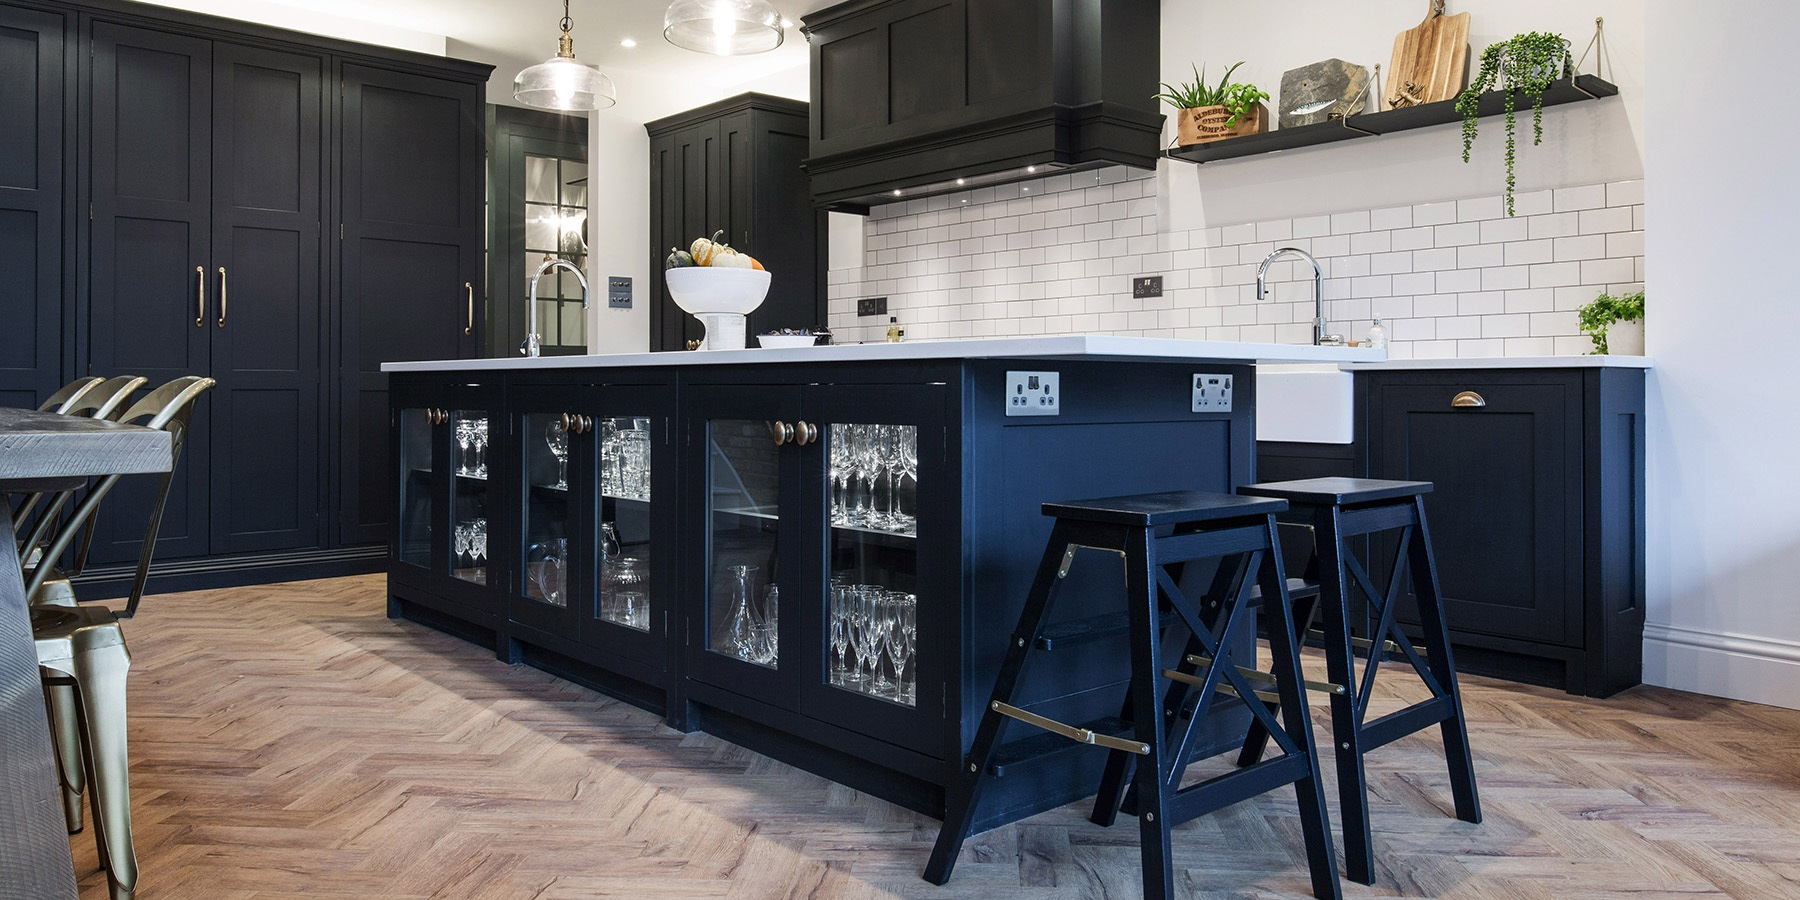 Industrial Style Handmade Shaker Kitchen - Beautiful bespoke Burlanes Hoyden kitchen with large kitchen island, glass doors, beautiful big larder unit and pendant lighting.